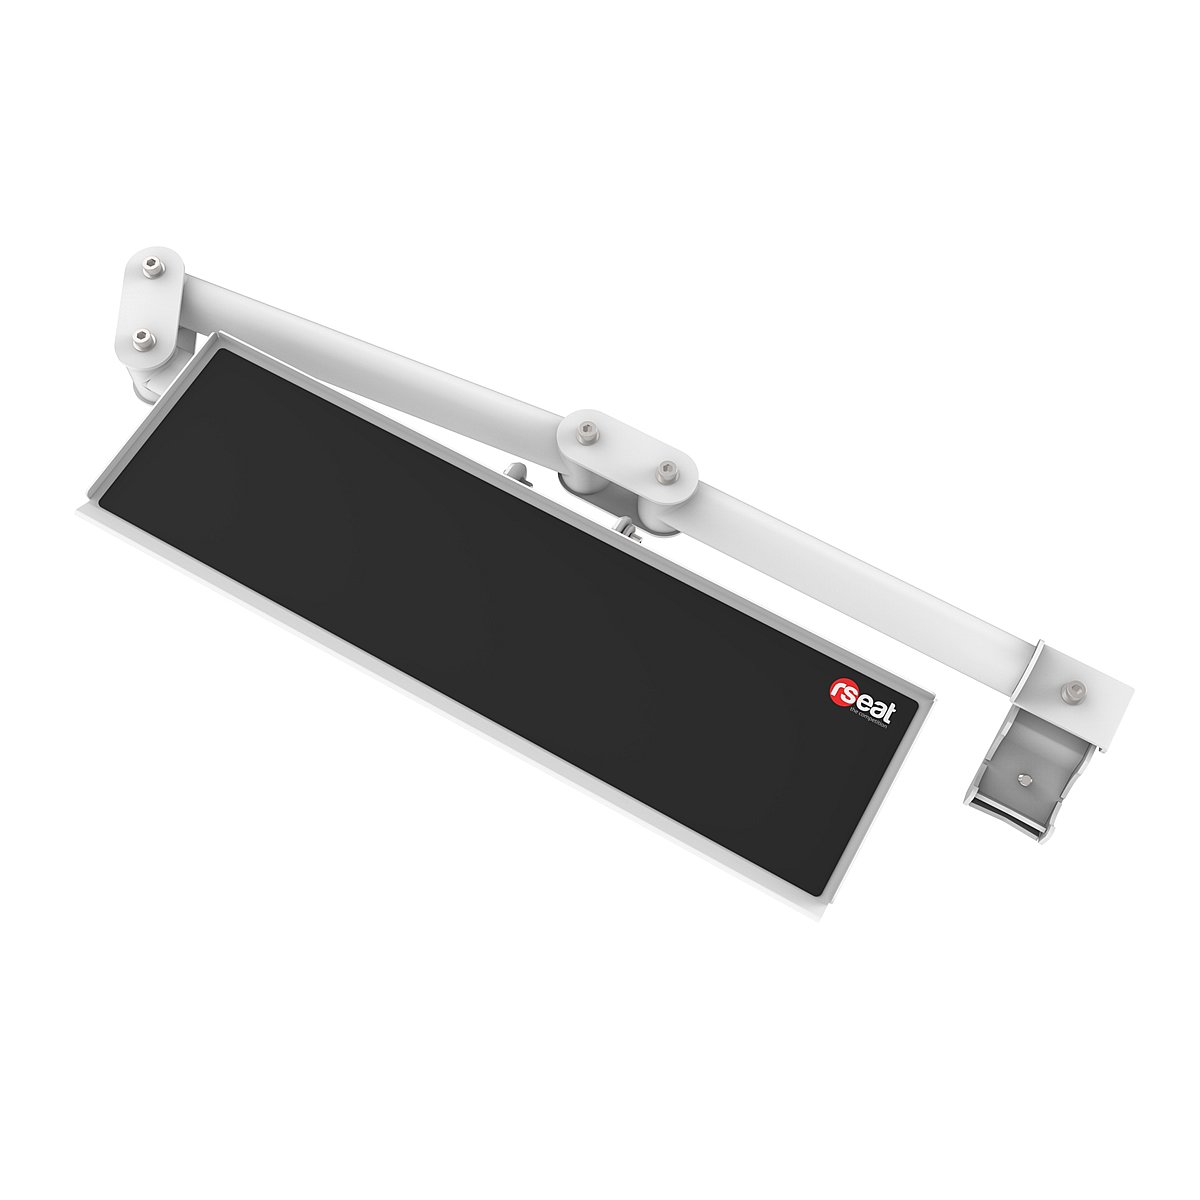 B1 / P1 / C1 Keyboard and mouse tray Upgrade kit White